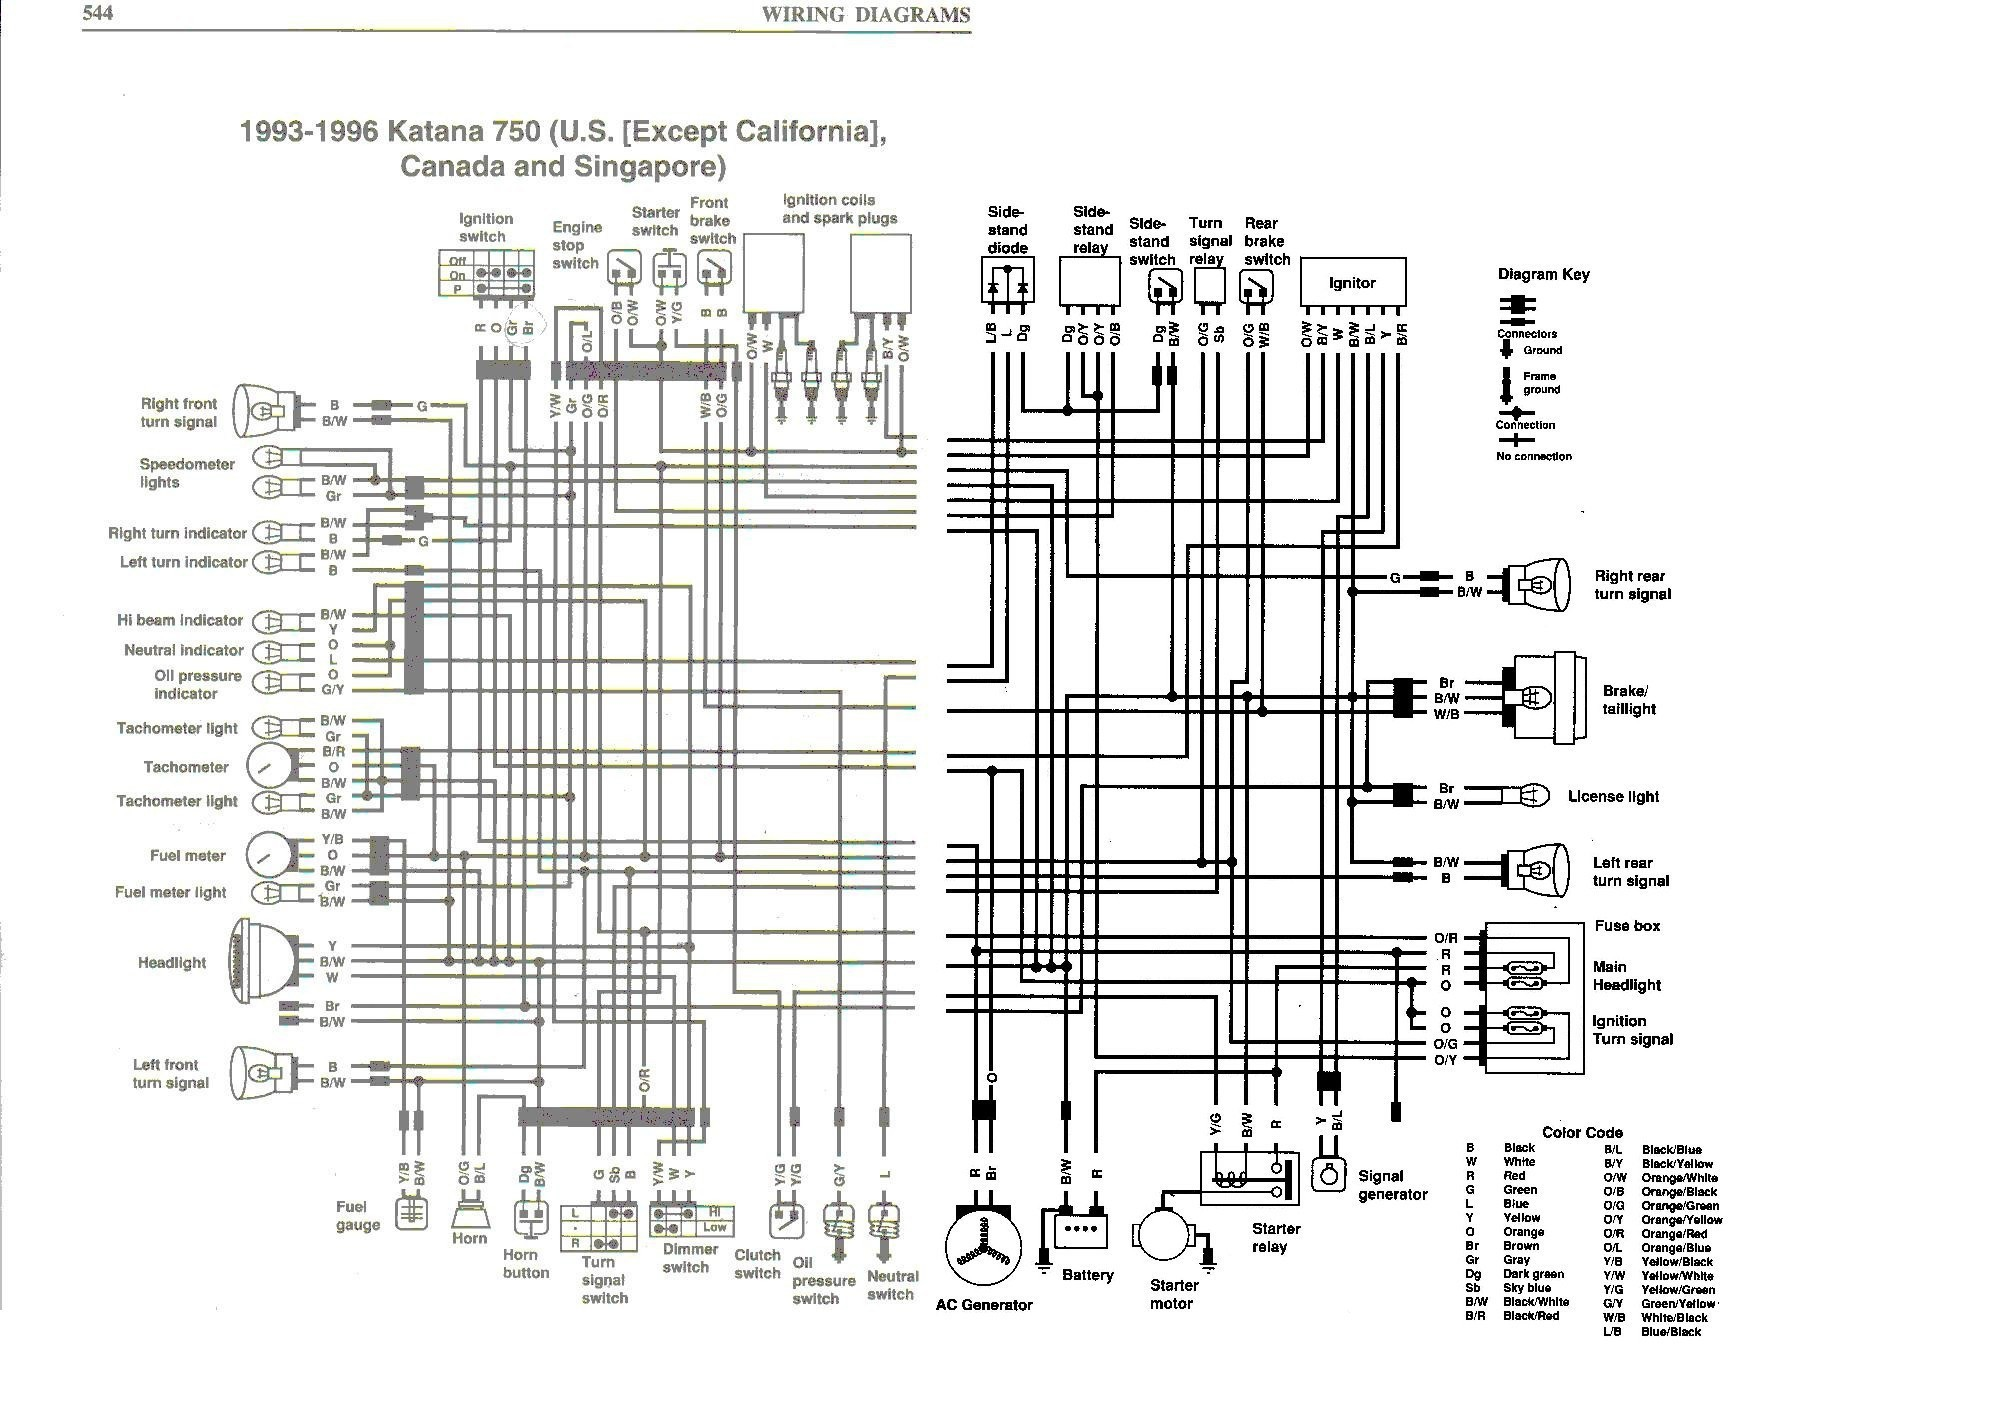 Wiring Diagram Suzuki Bandit 600 Data Wiring Diagrams